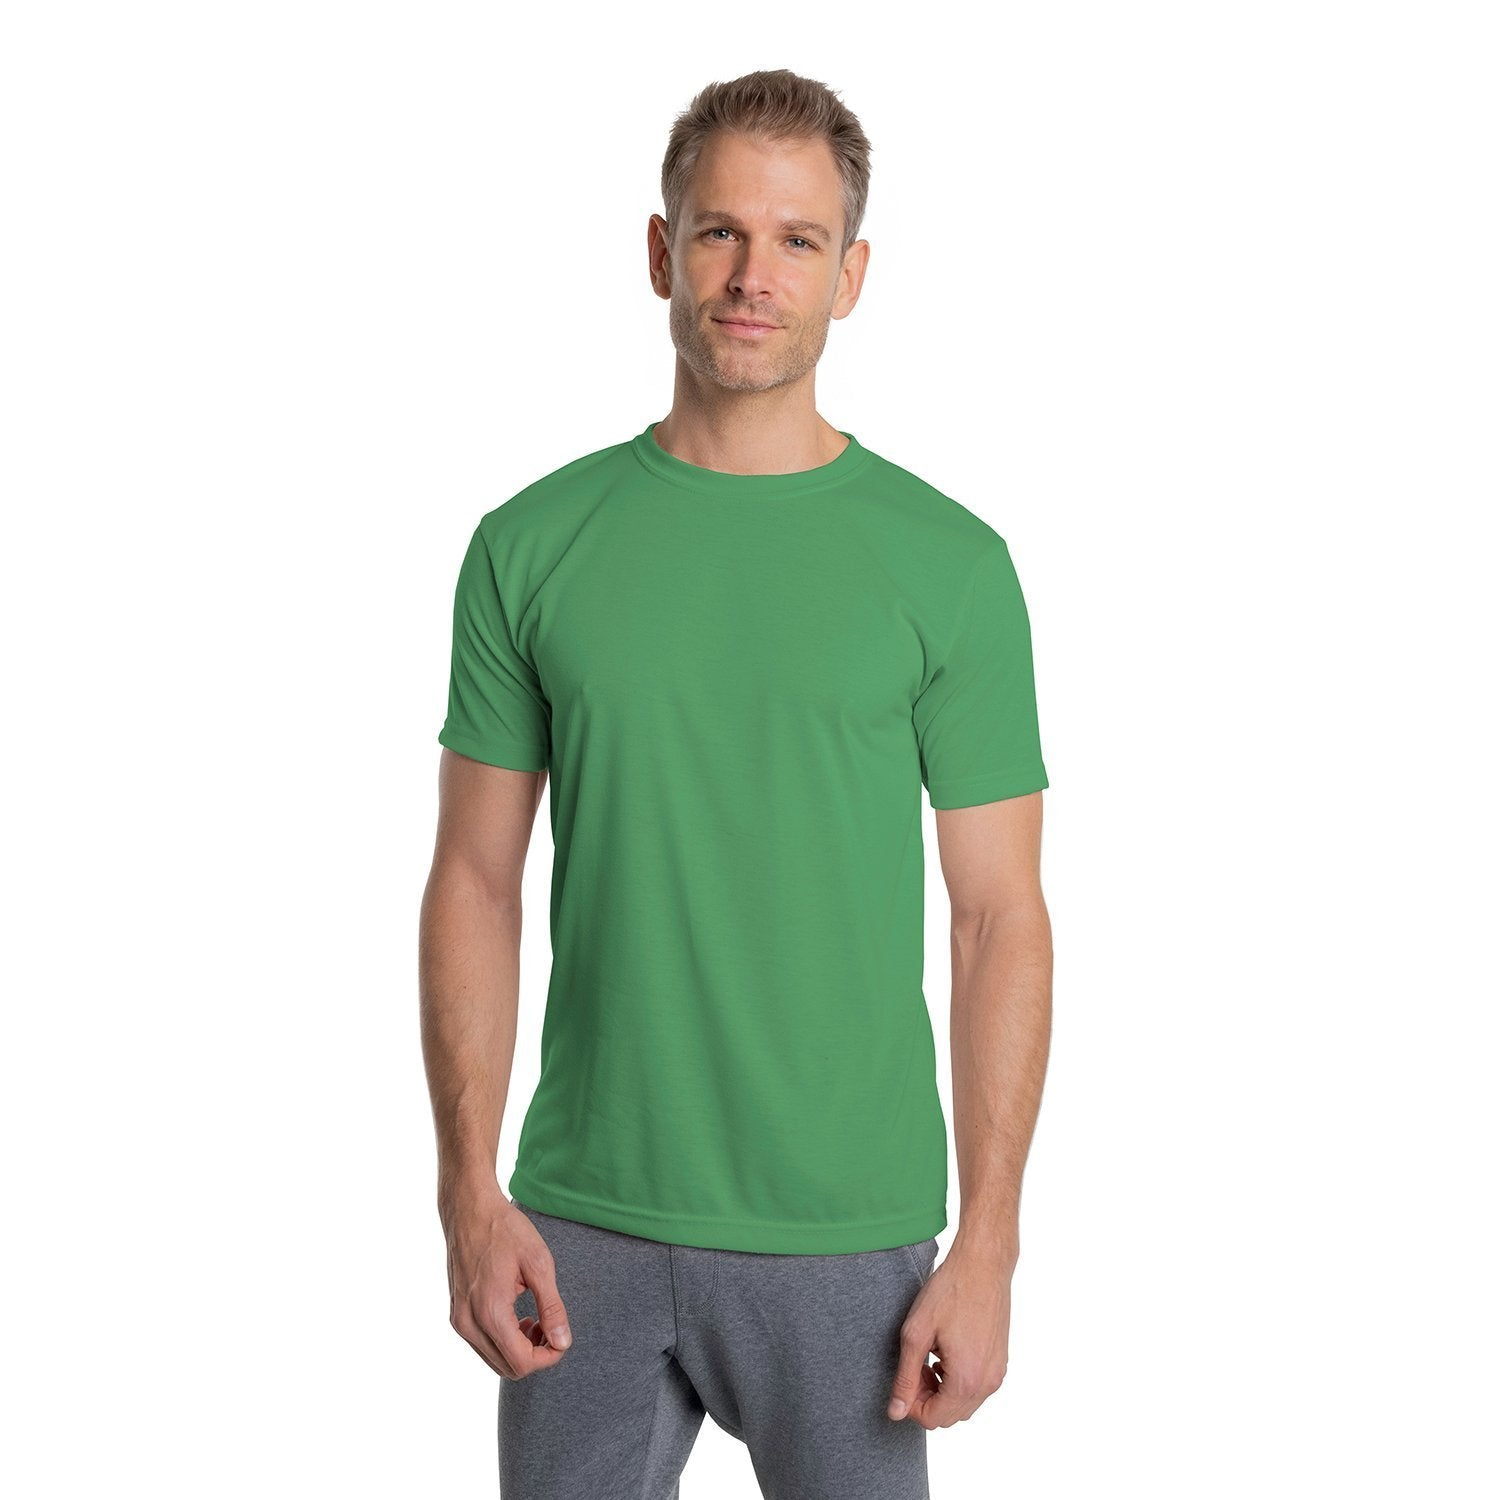 A1SJBBLF Basic Performance T-Shirt - Leaf